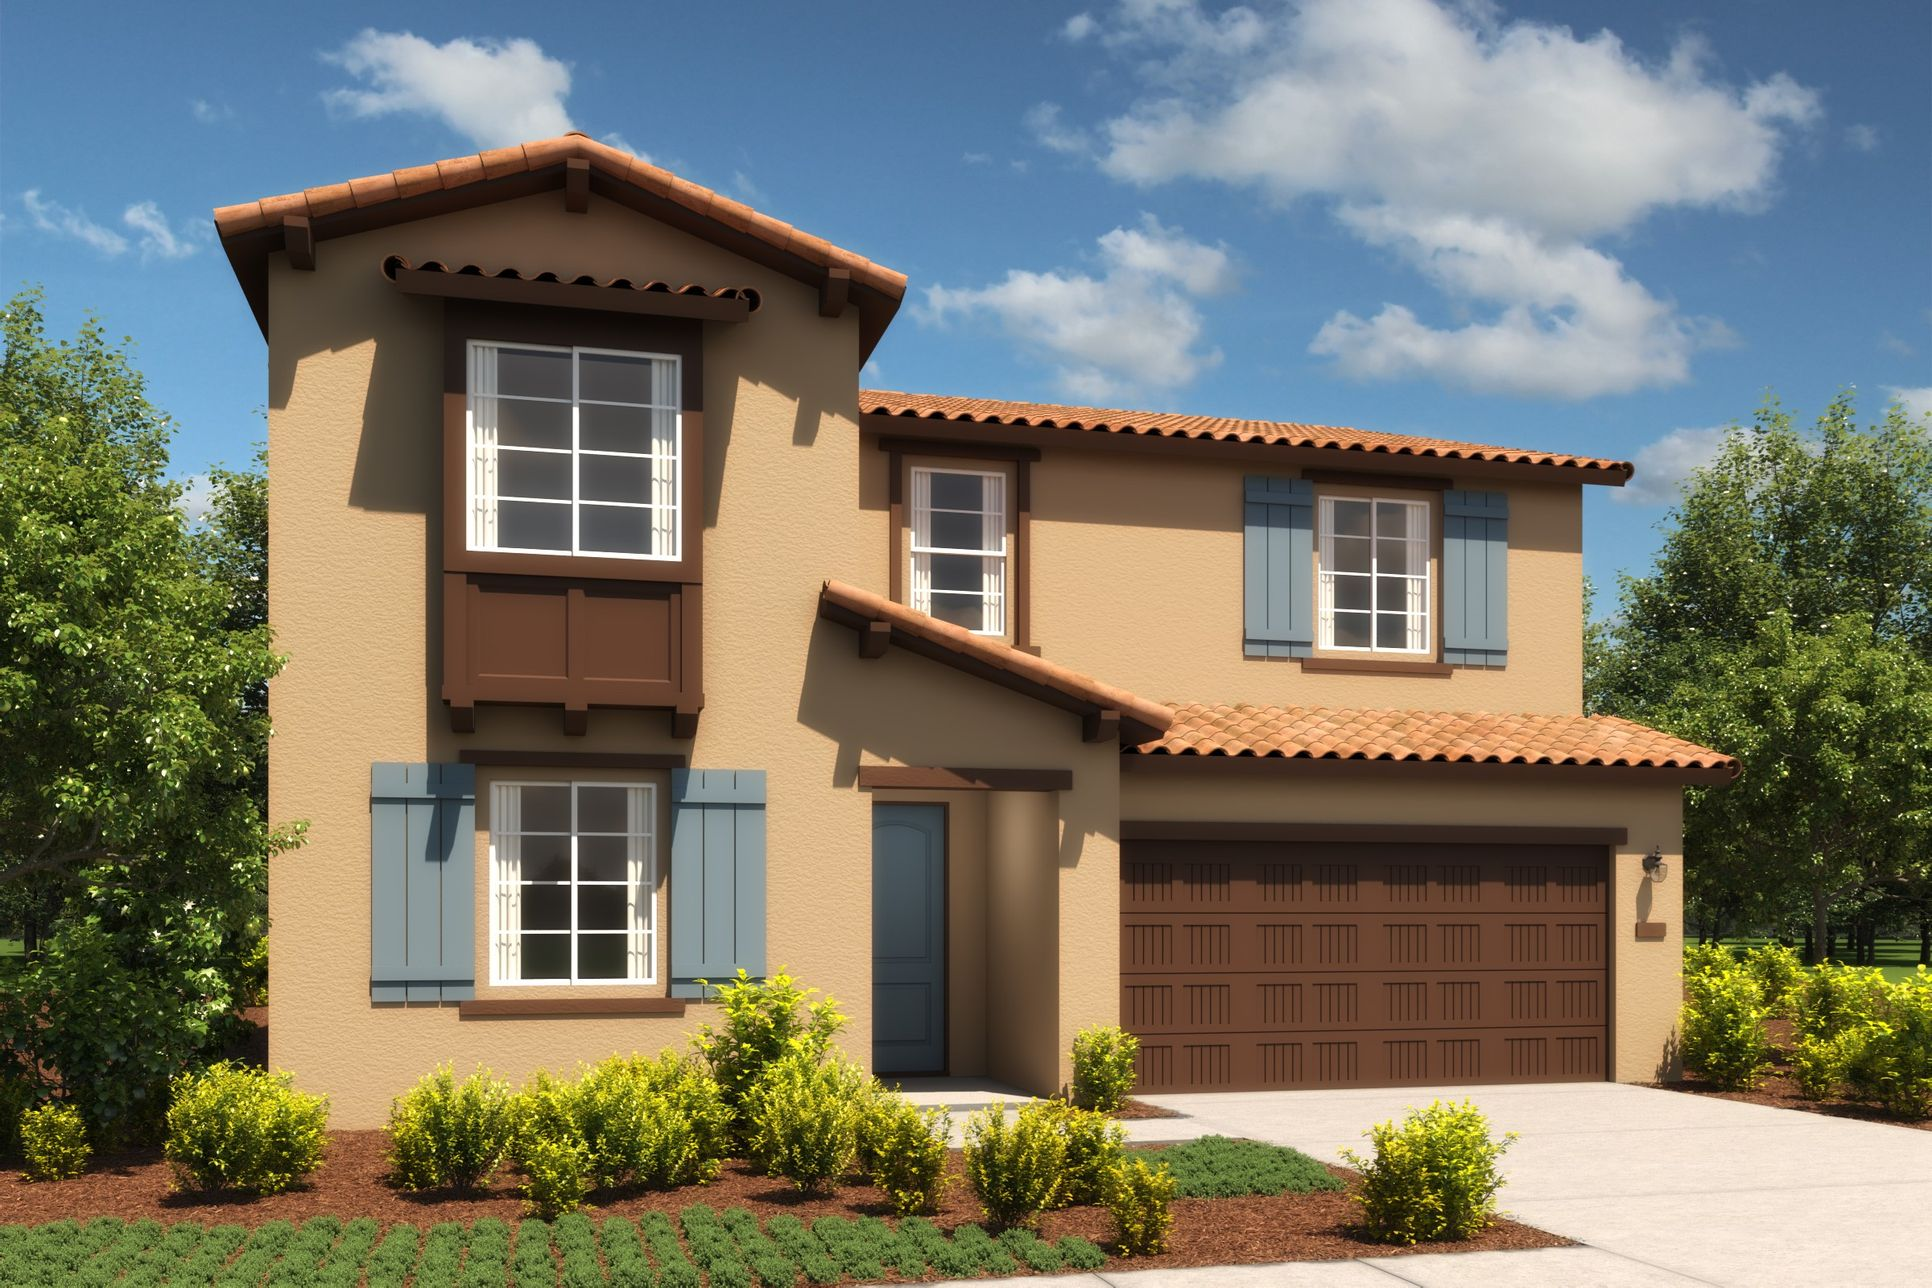 Exterior:Amber Spanish Colonial A